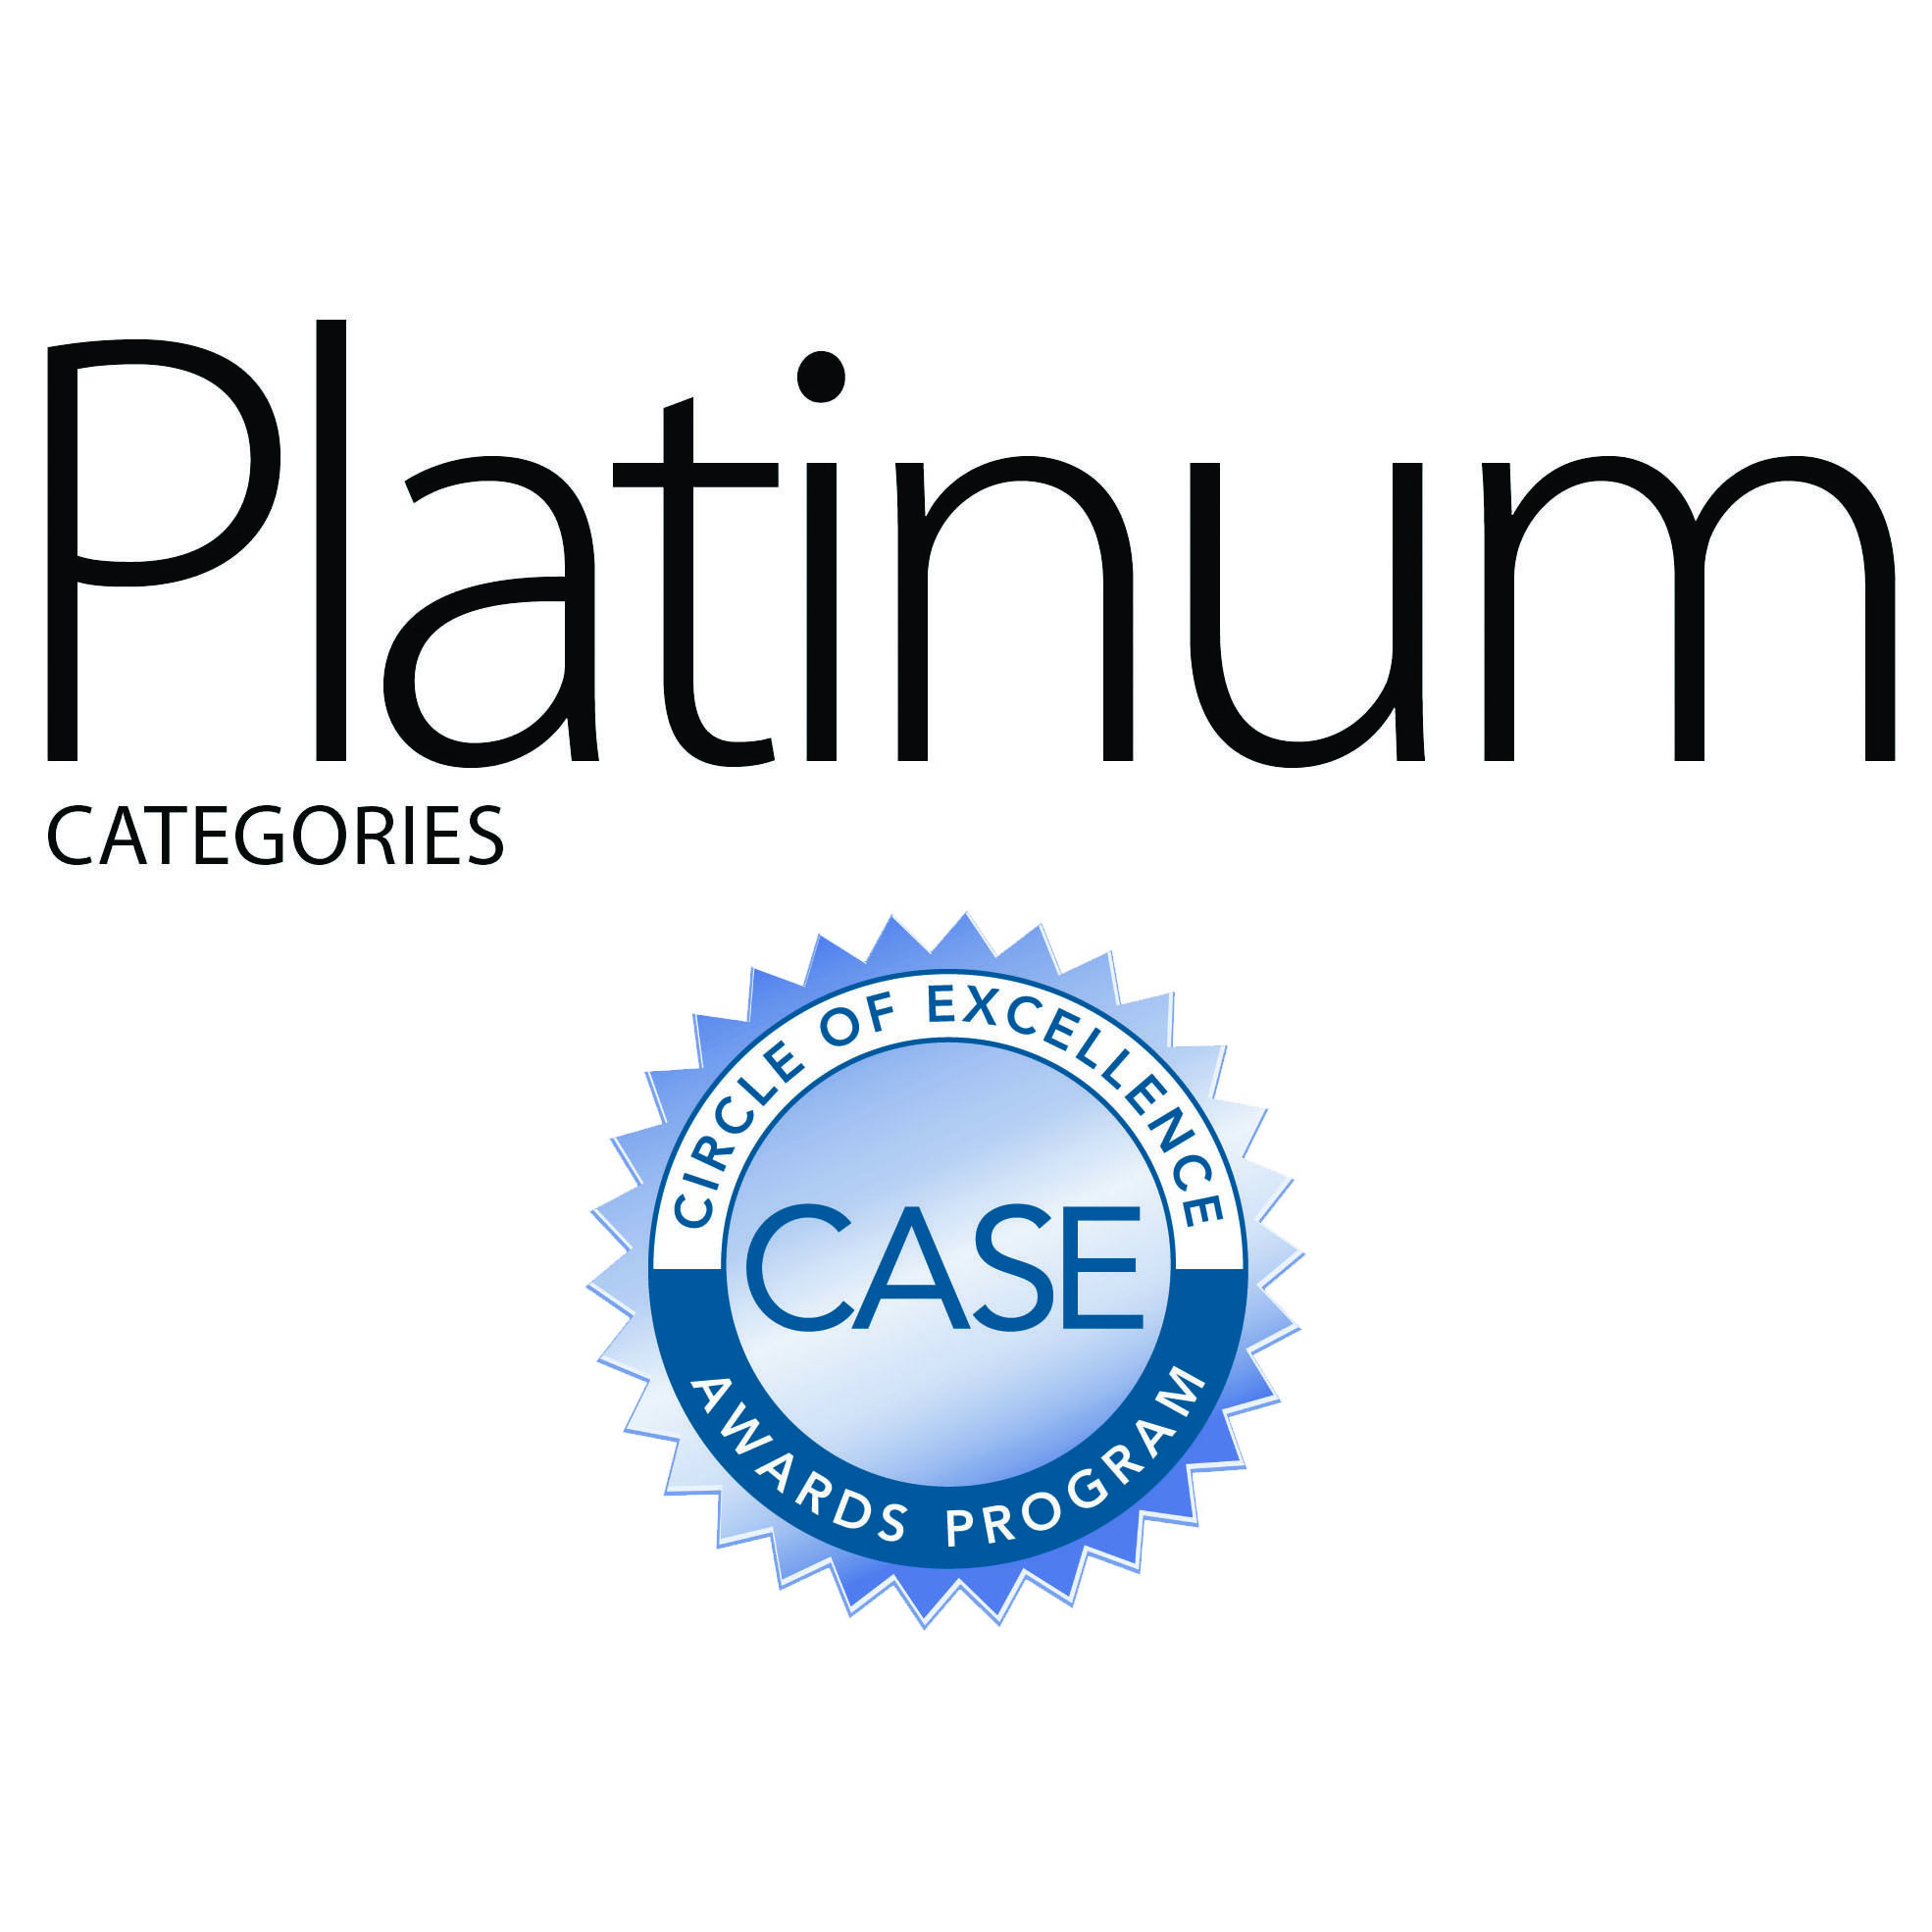 Congratulations to our Platinum Category gold award winners.